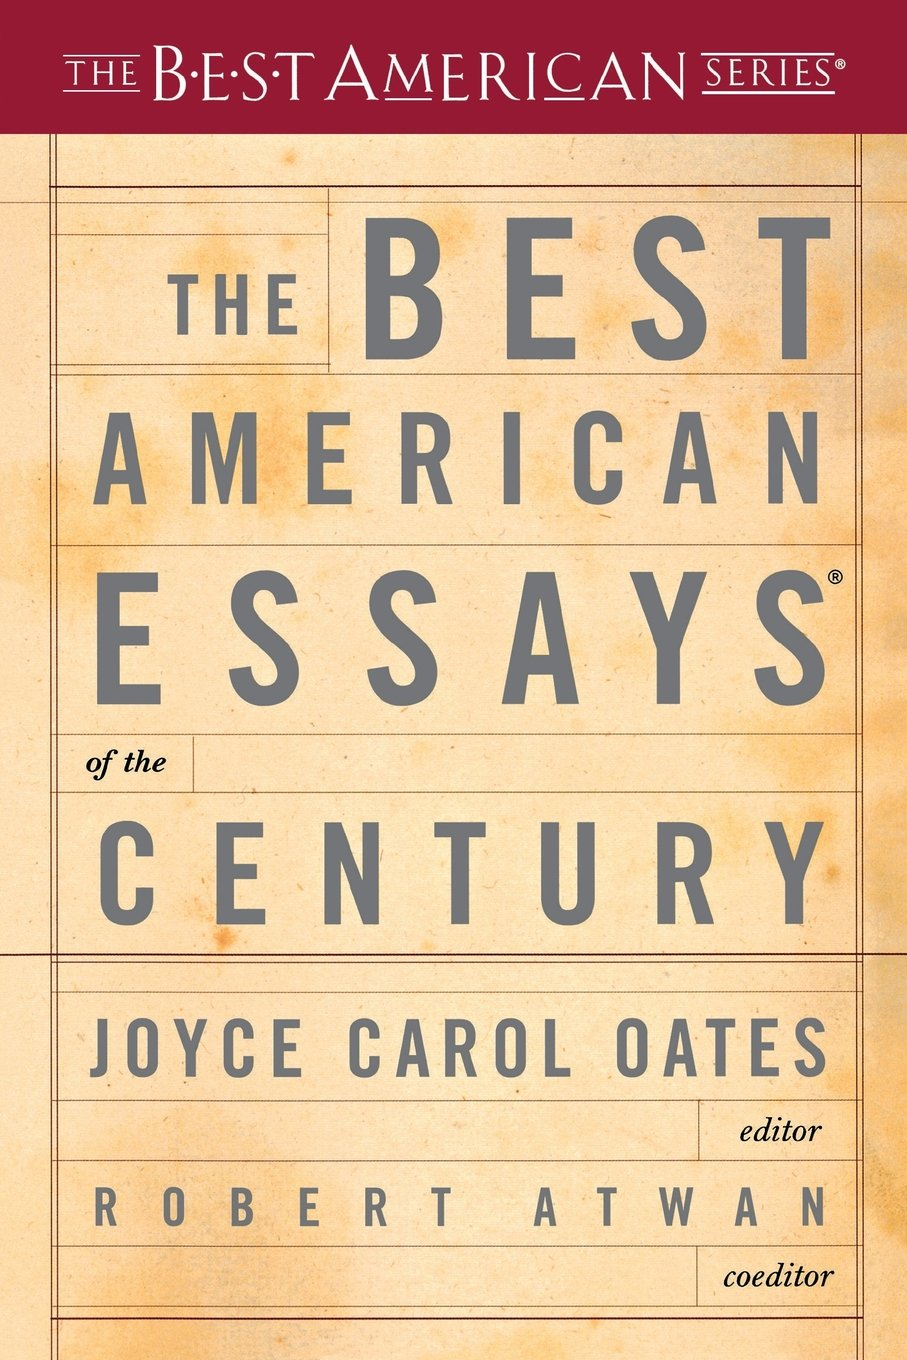 001 The Best American Essays Of Century Essay Example Imposing Joyce Carol Oates Pdf Table Contents Full